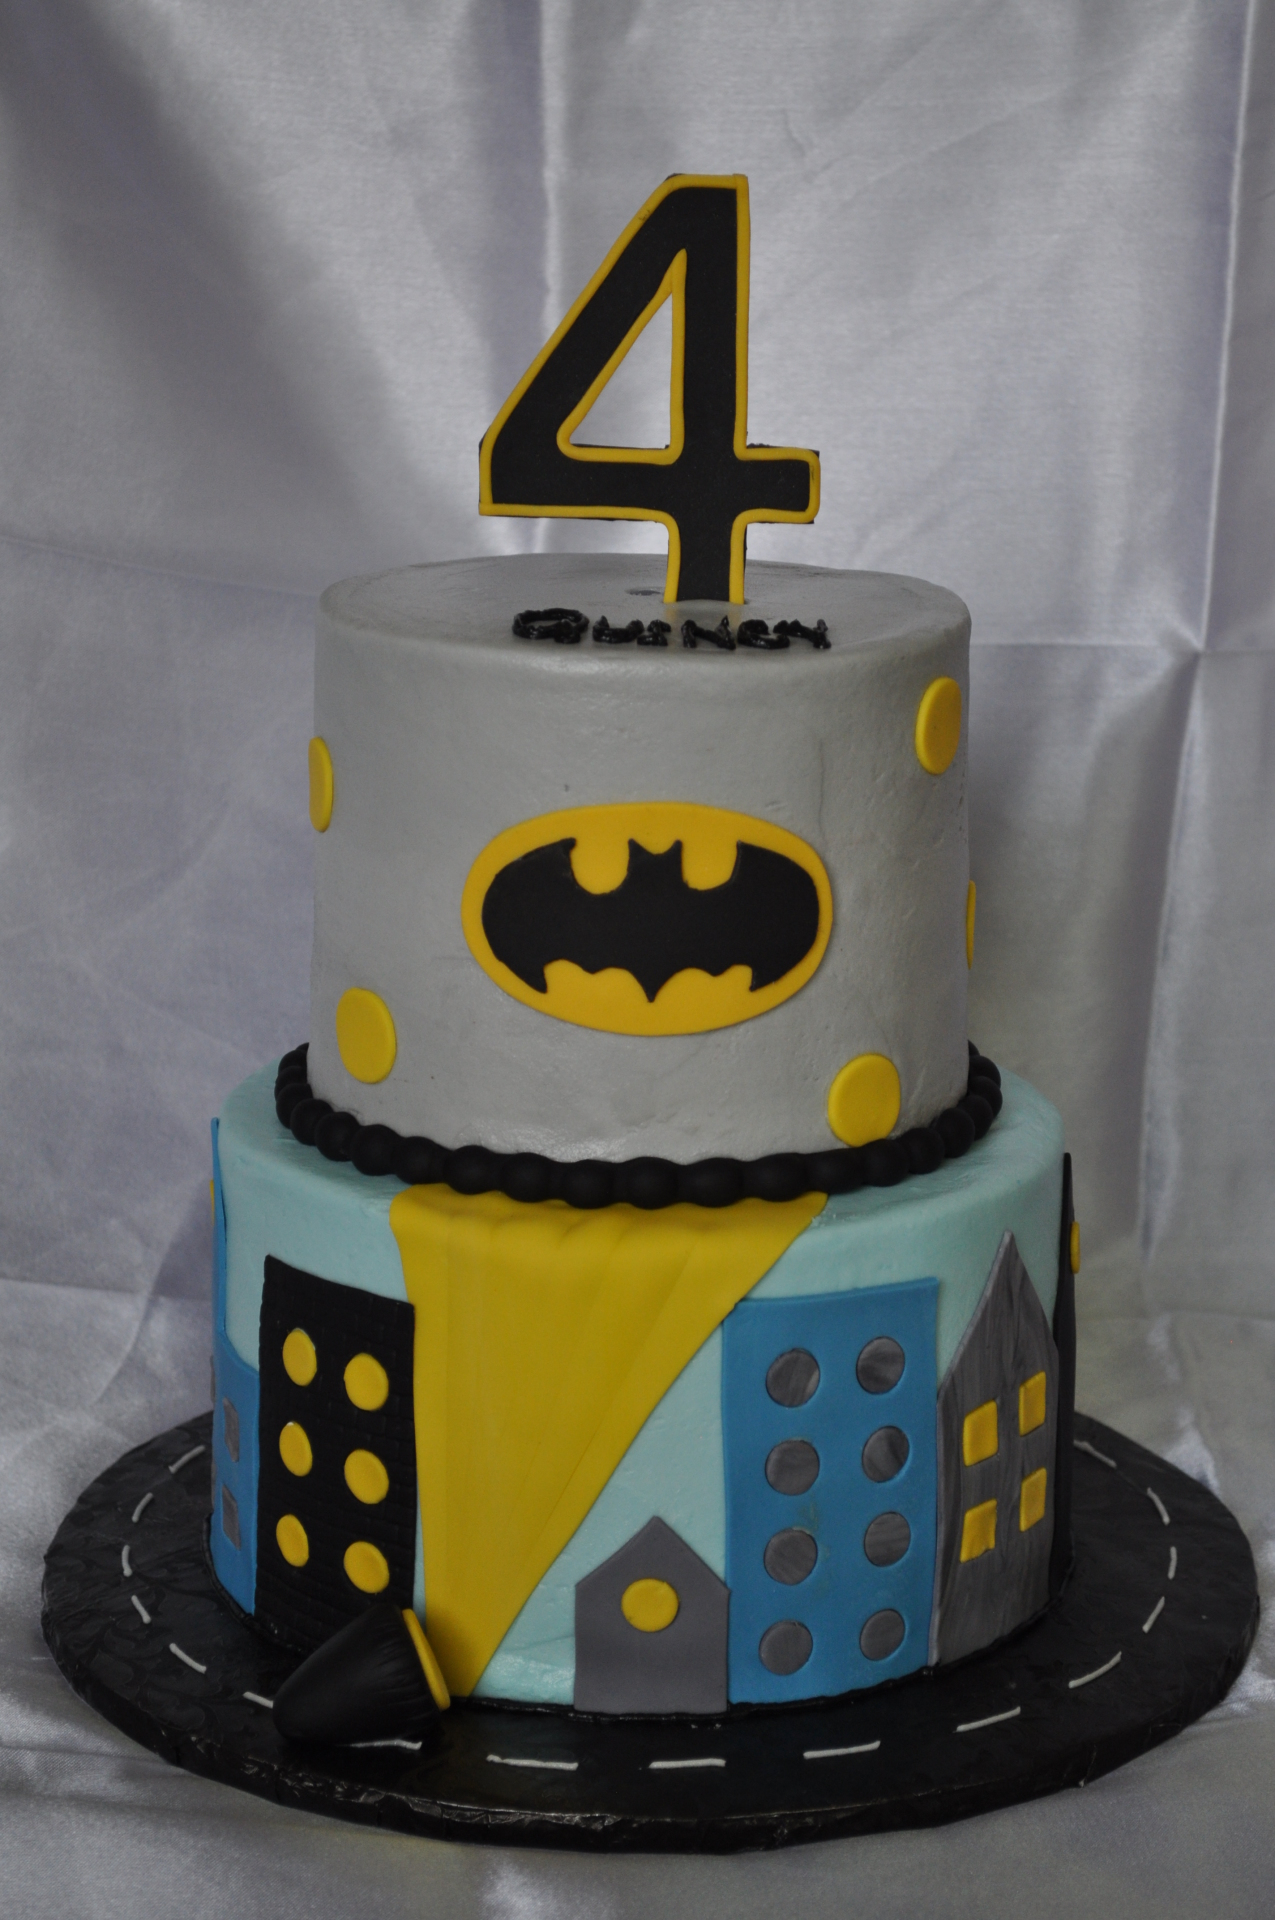 Batman cake, 4th birthday cake